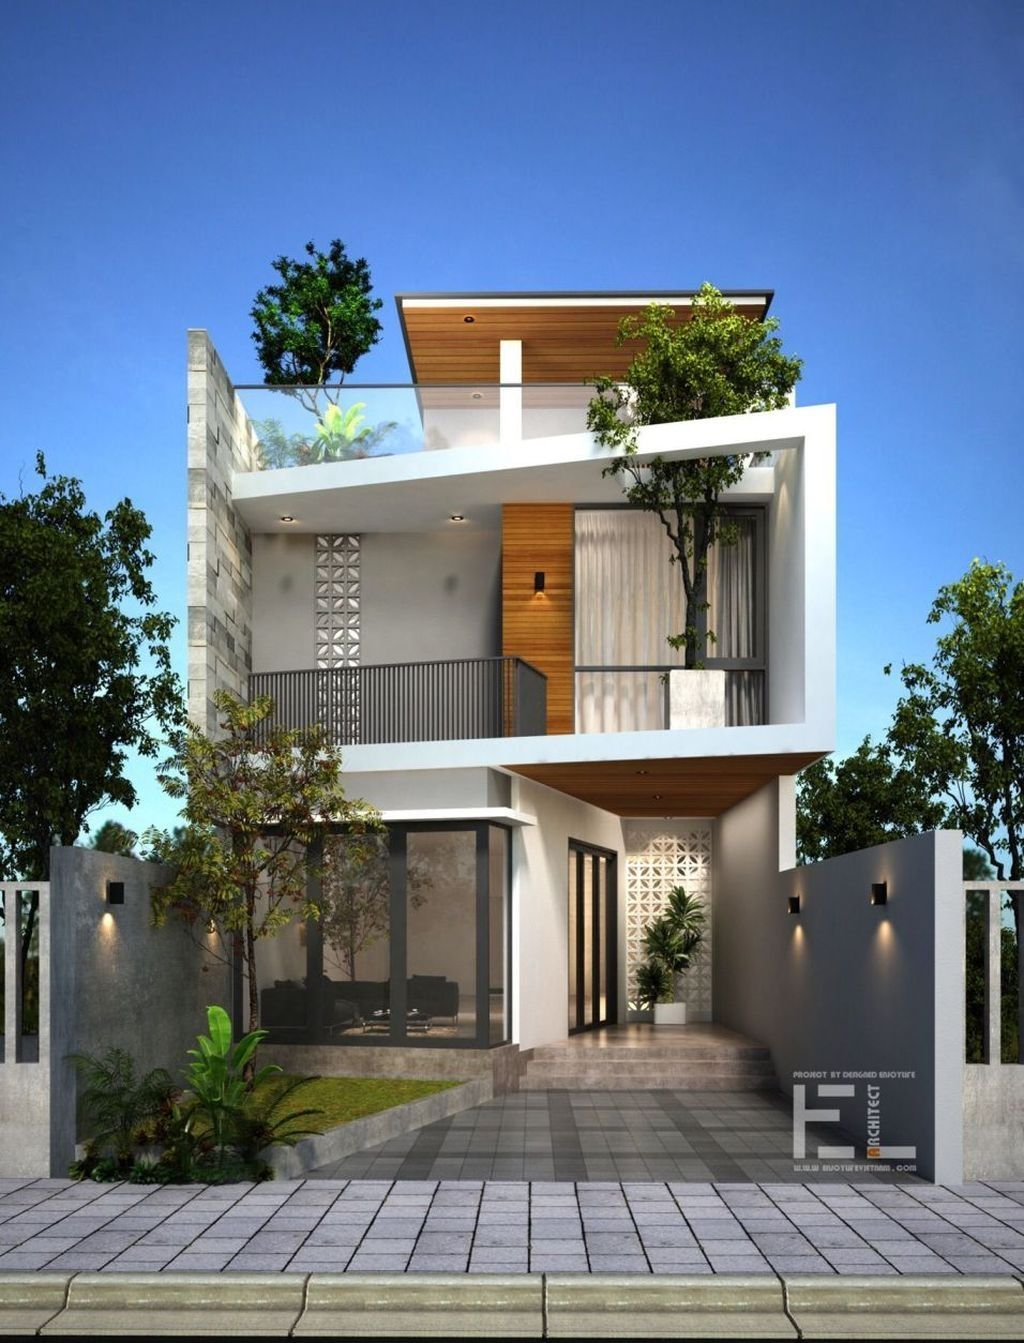 38 Awesome Small Contemporary House Designs Ideas To Try In 2020 Contemporary House Exterior Facade House House Architecture Design